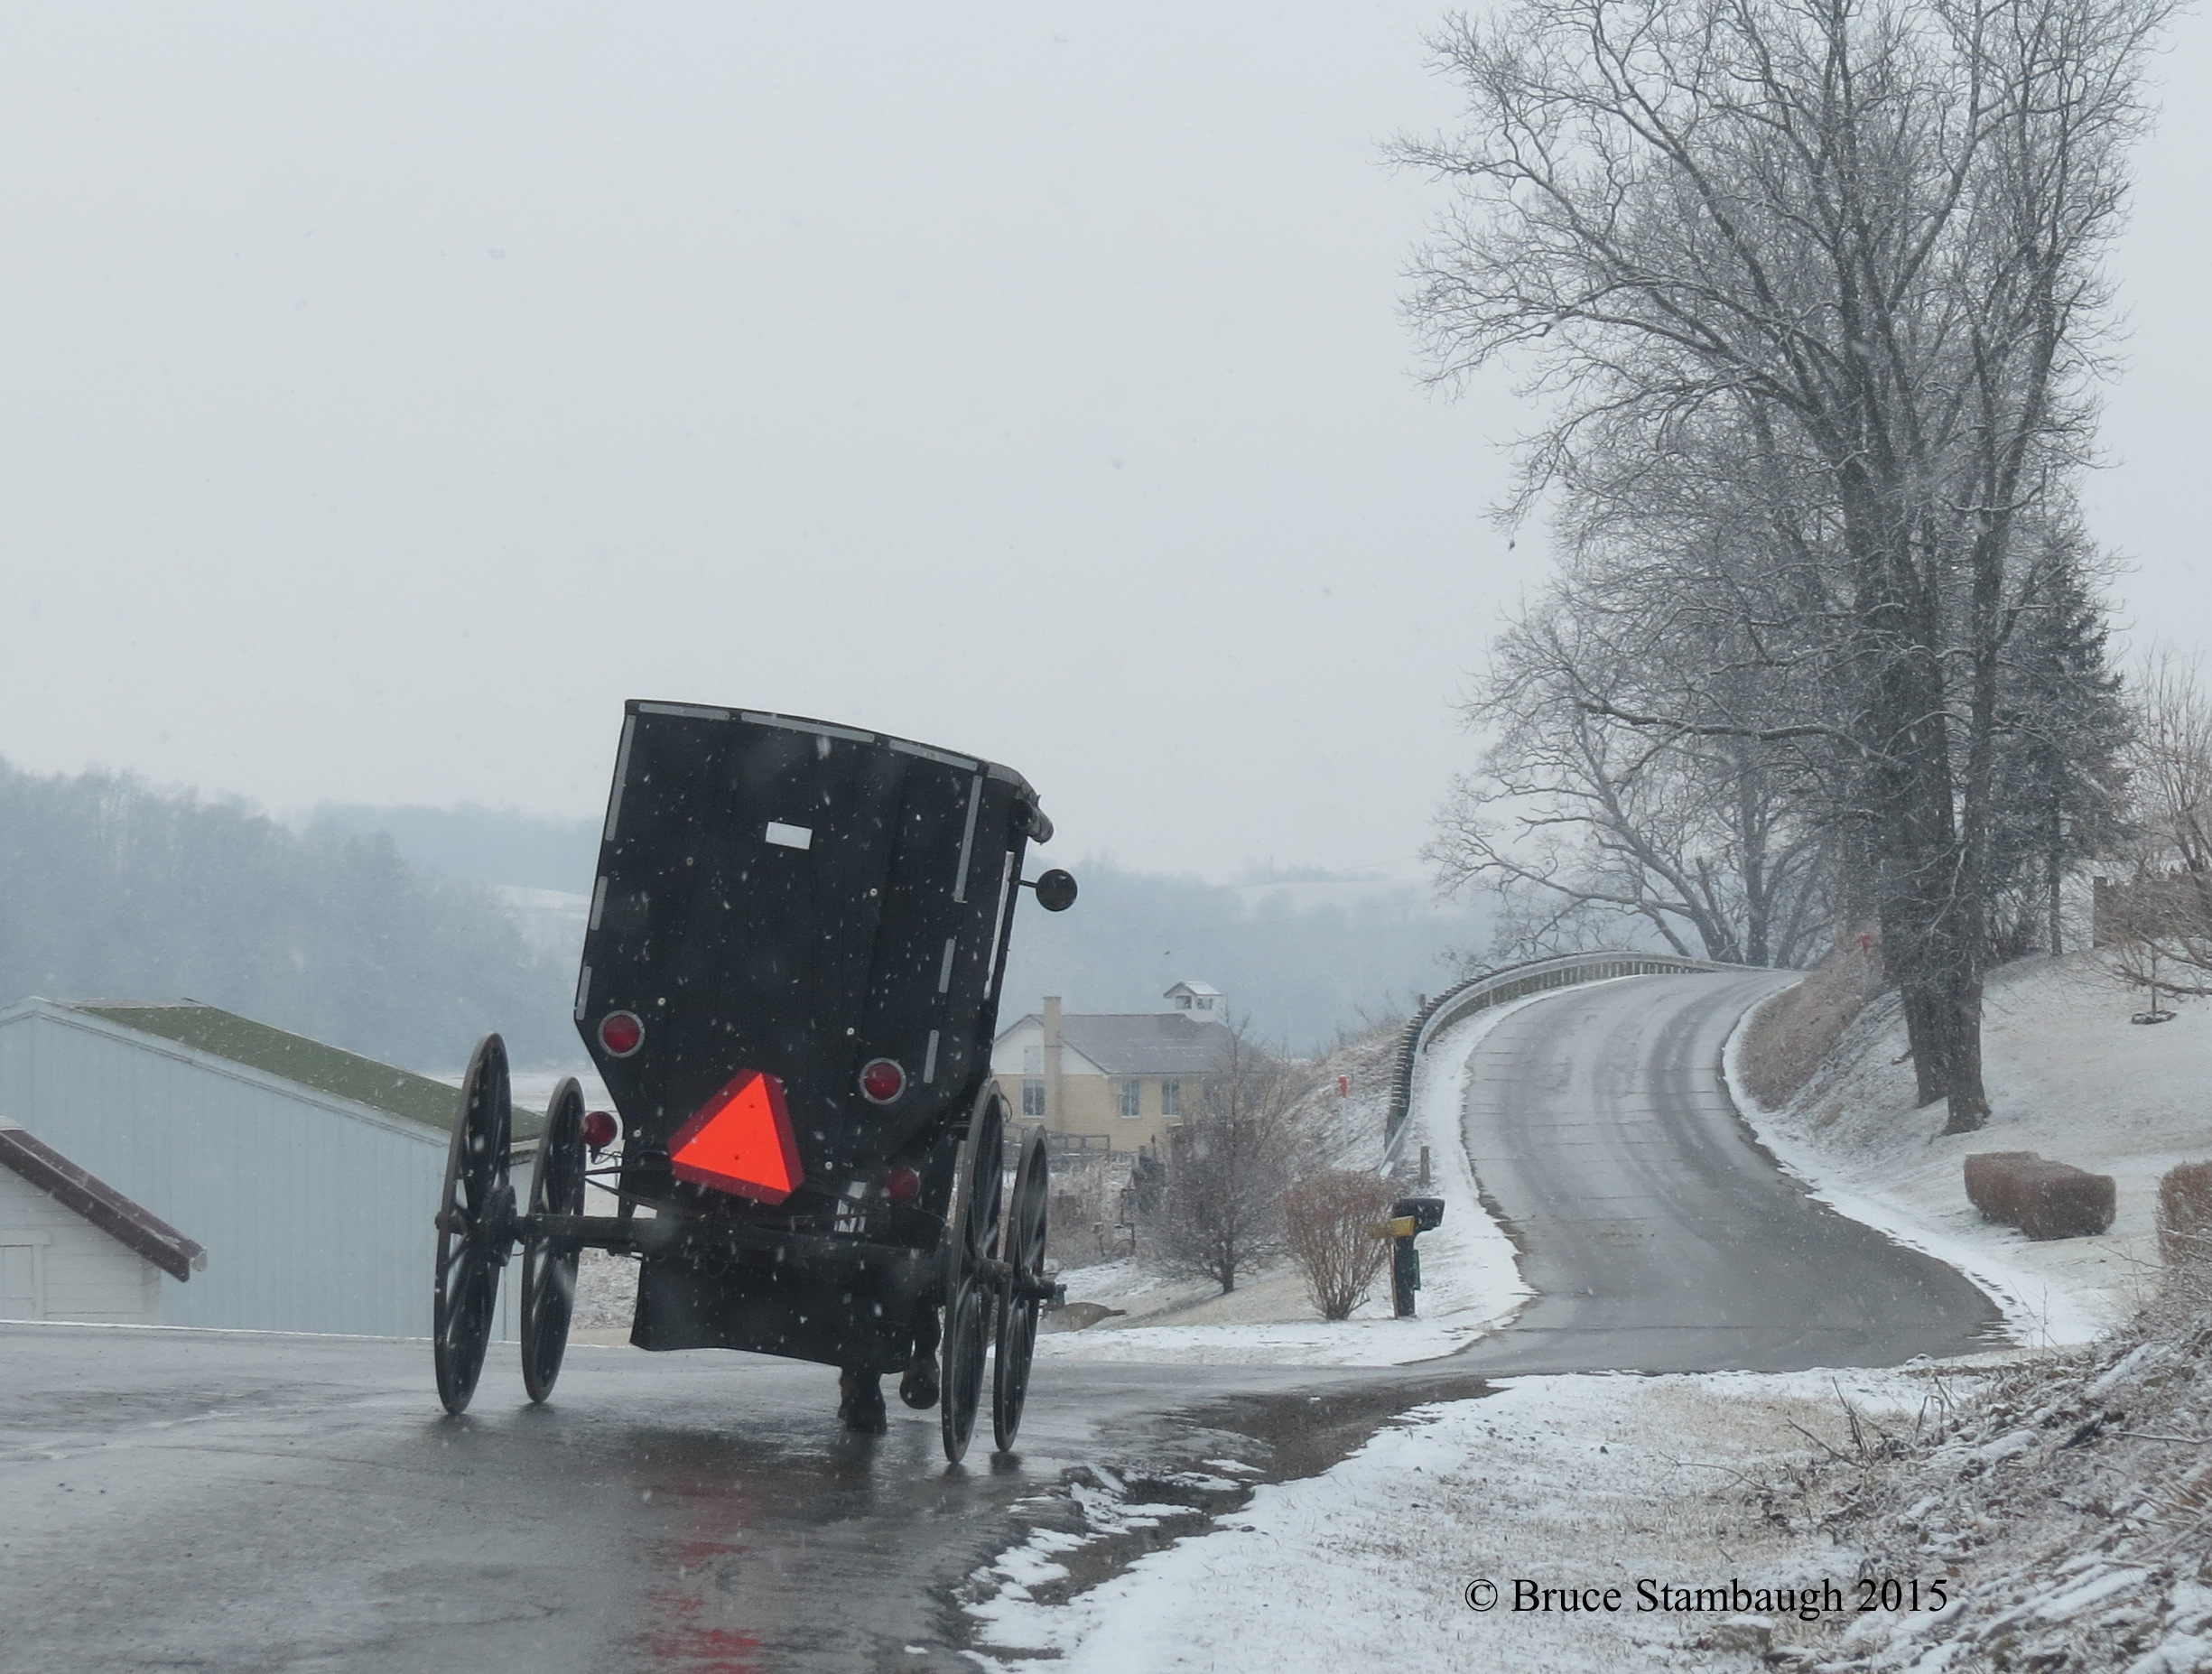 Amish buggy, first day of spring